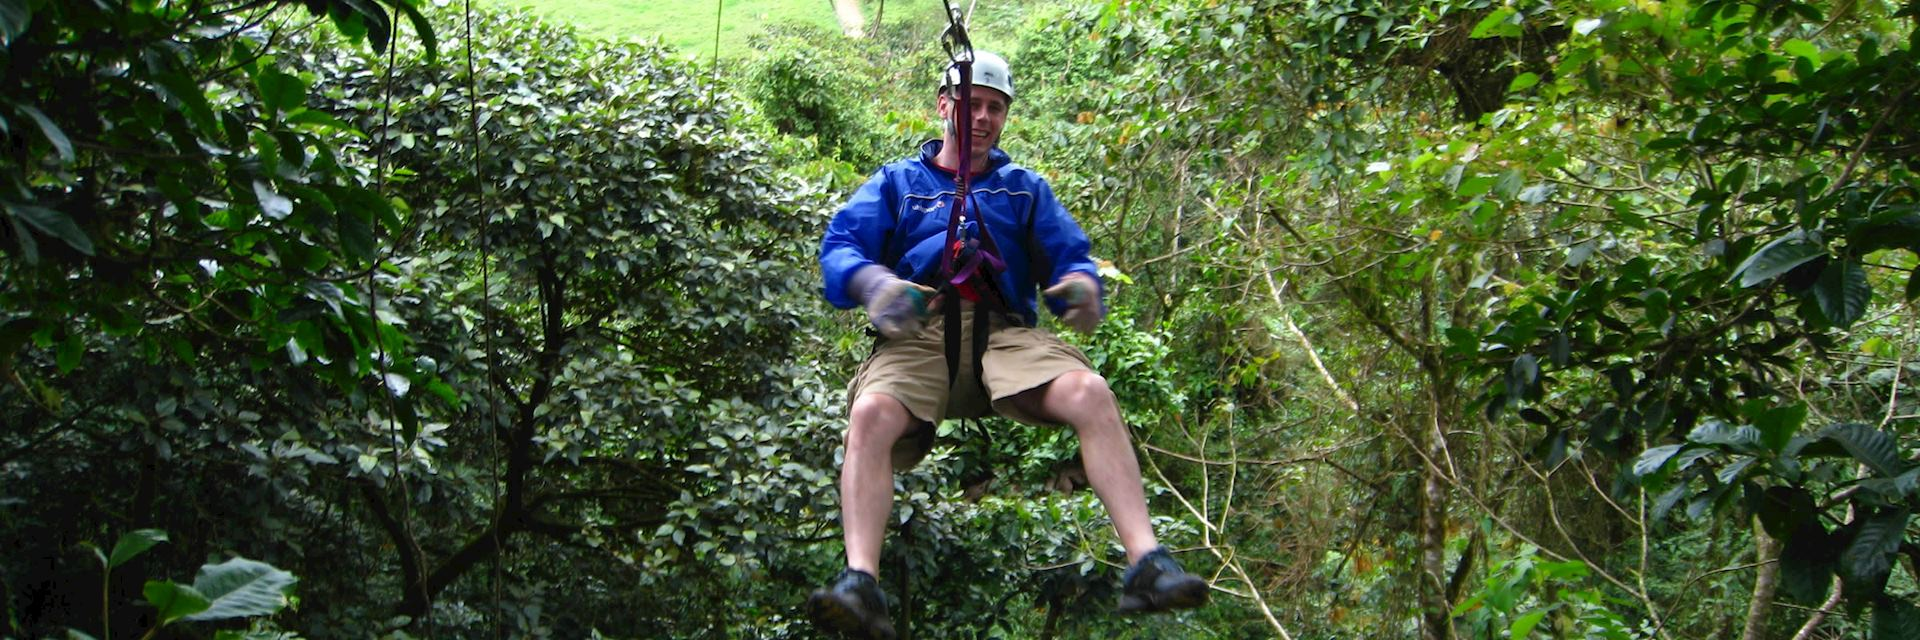 Nick zip-lining at San Ramon, Costa Rica